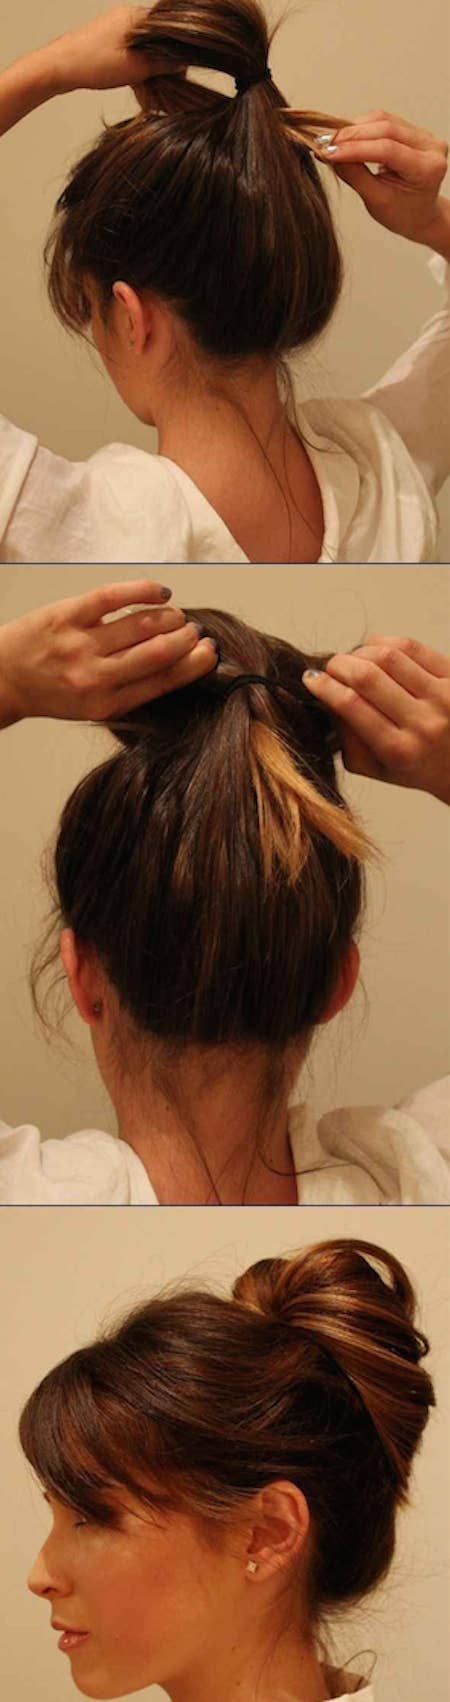 25 Tips And Tricks To Get The Perfect Bun